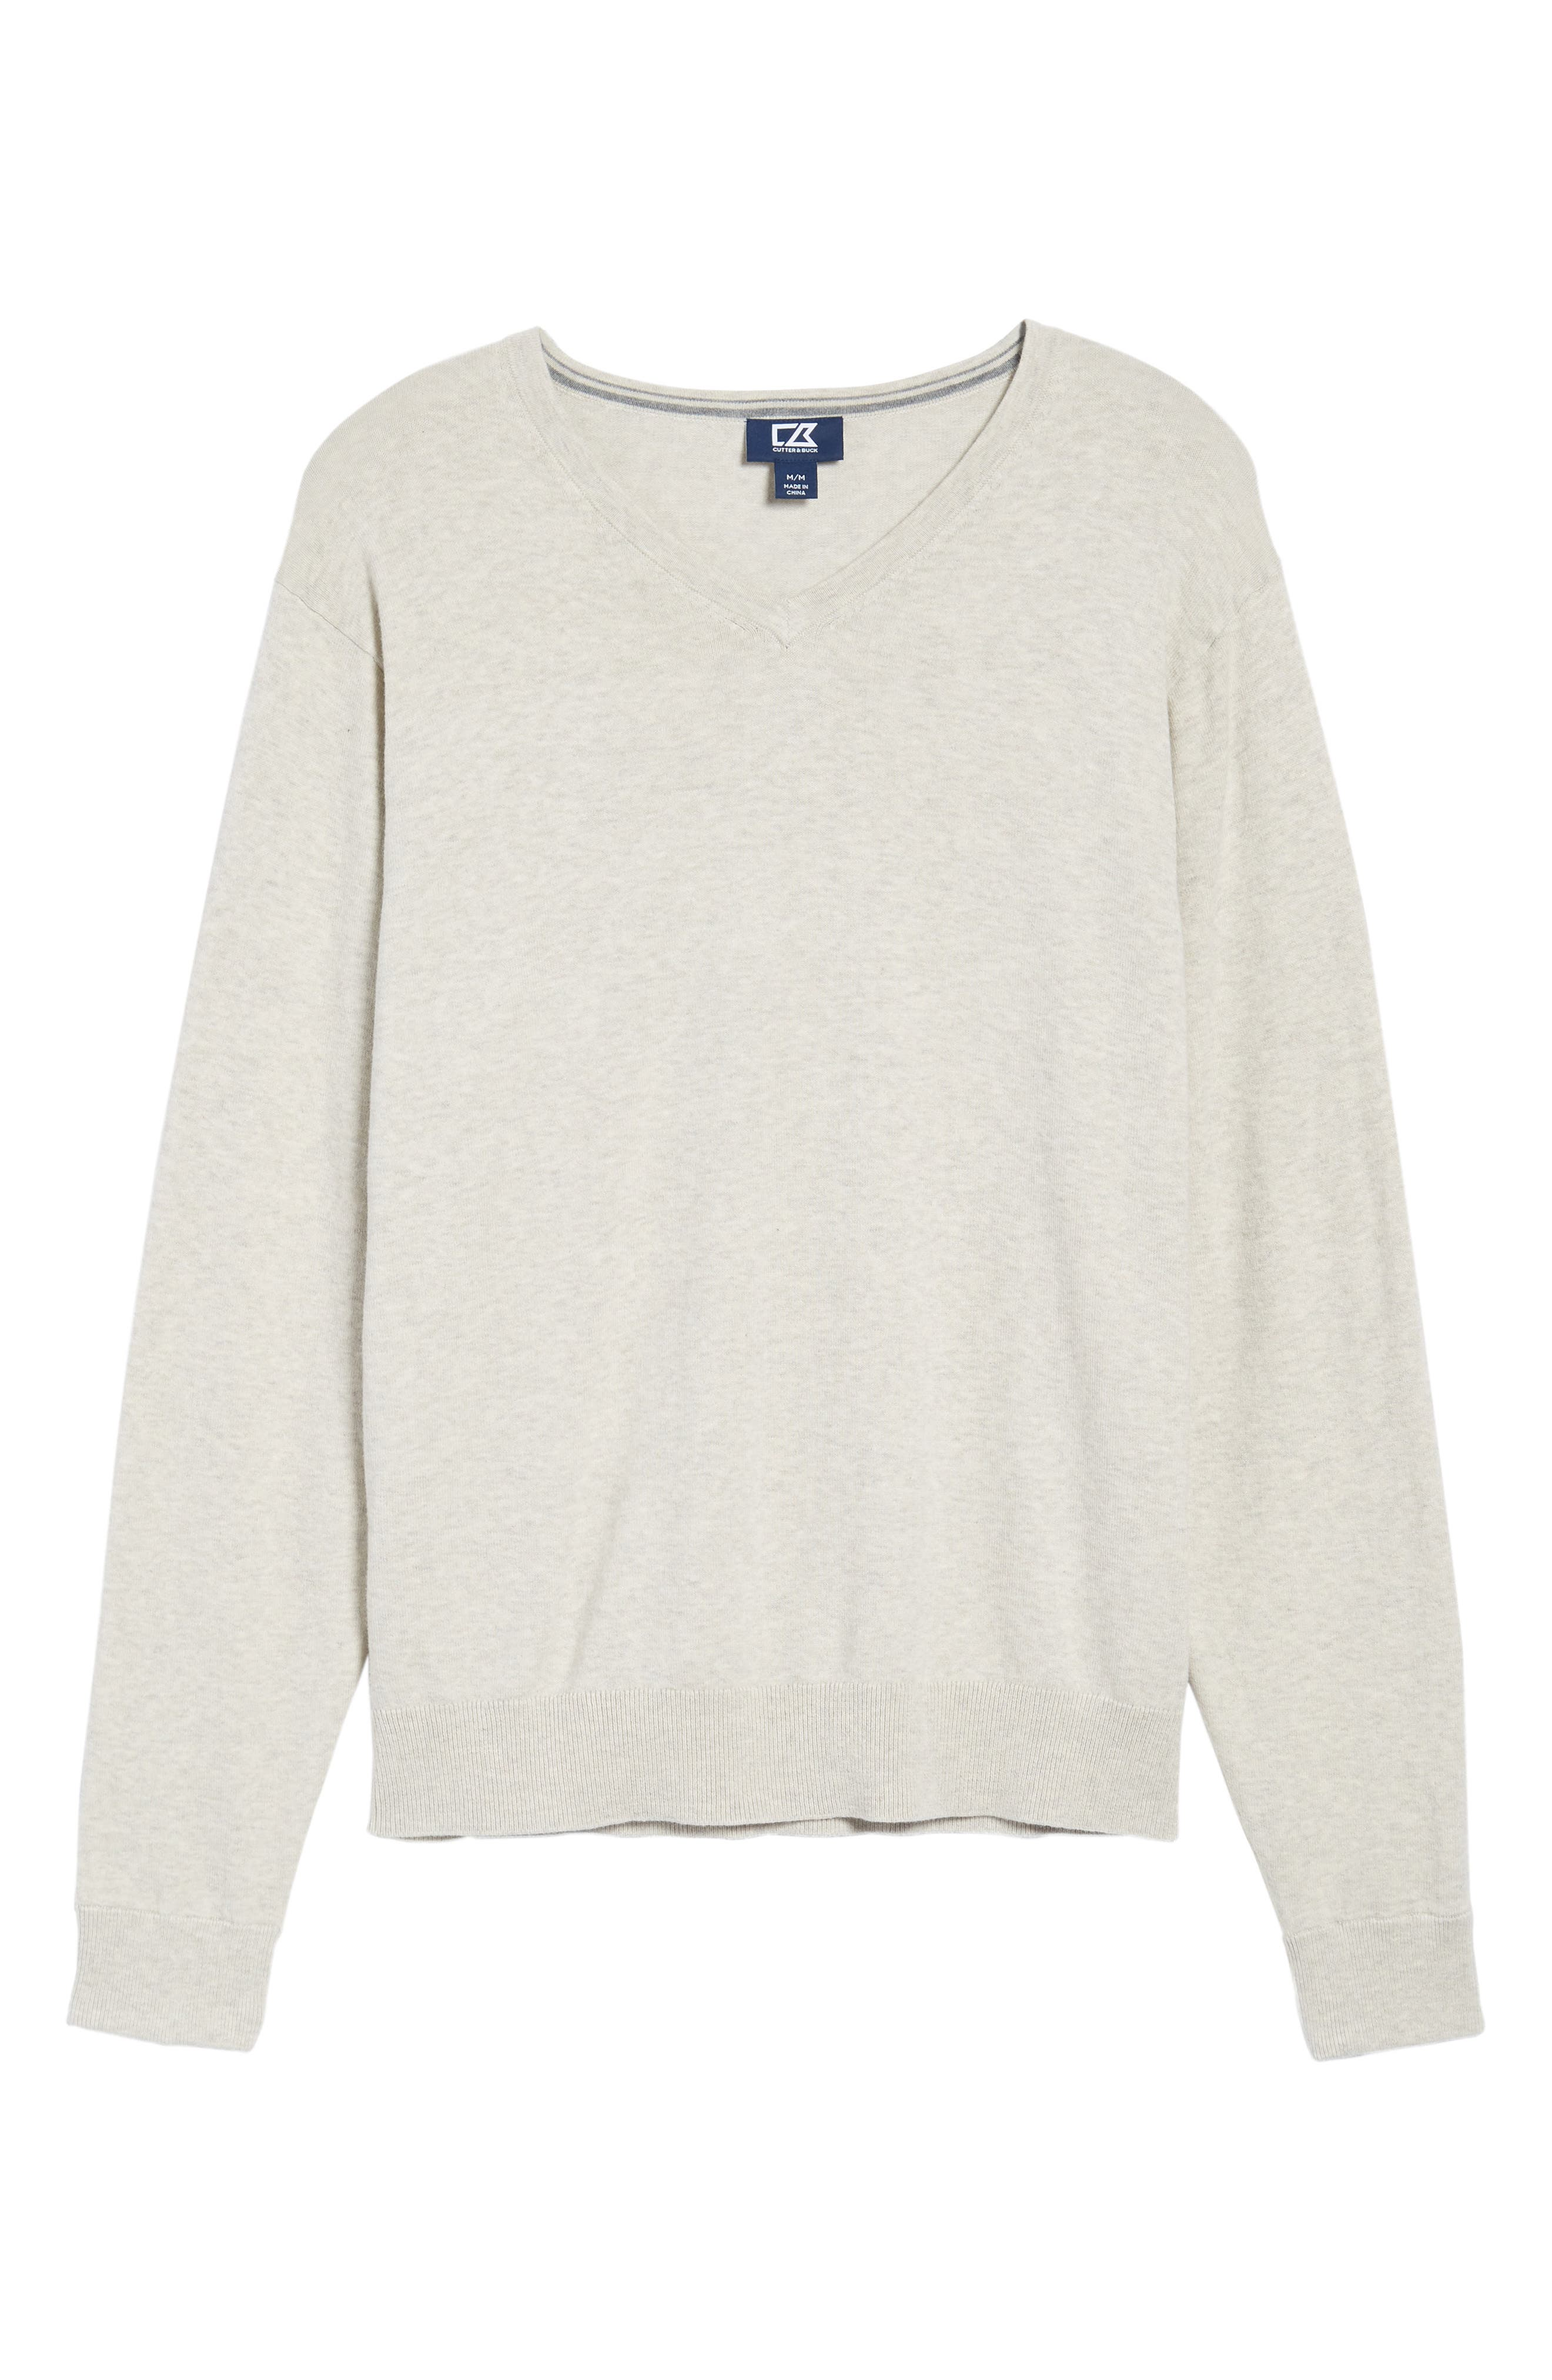 CUTTER & BUCK, Lakemont Classic Fit V-Neck Sweater, Alternate thumbnail 6, color, OATMEAL HEATHER